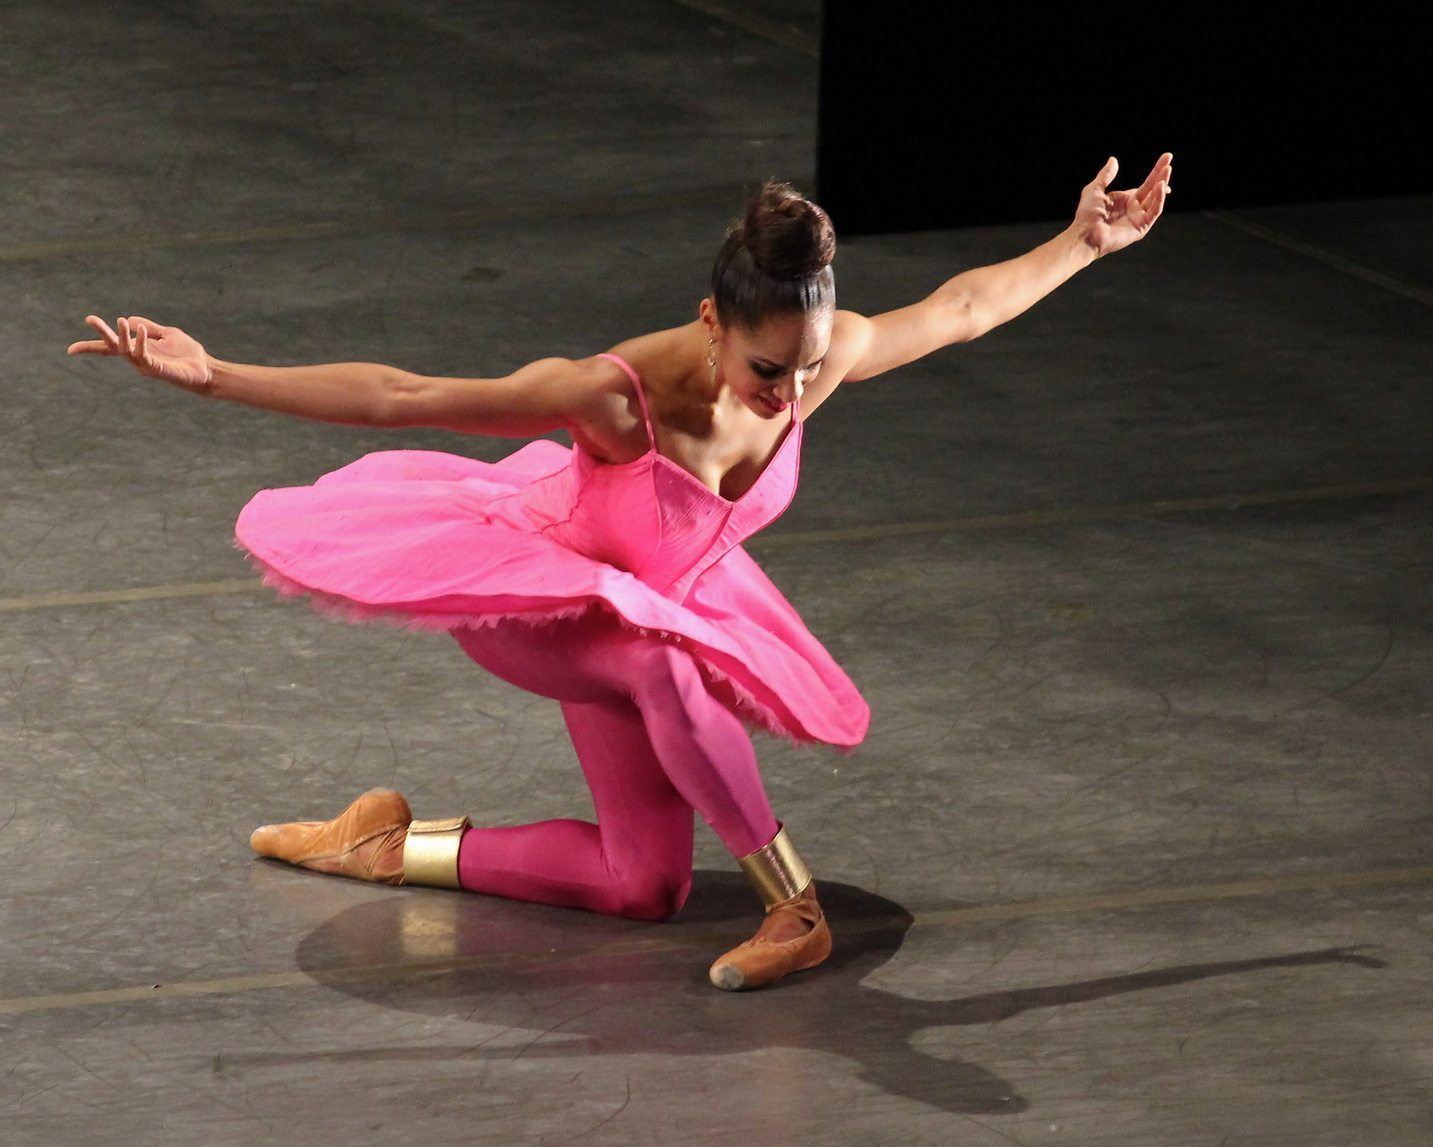 Image: Ballerina Misty Copeland in a beautiful pose in bright pink